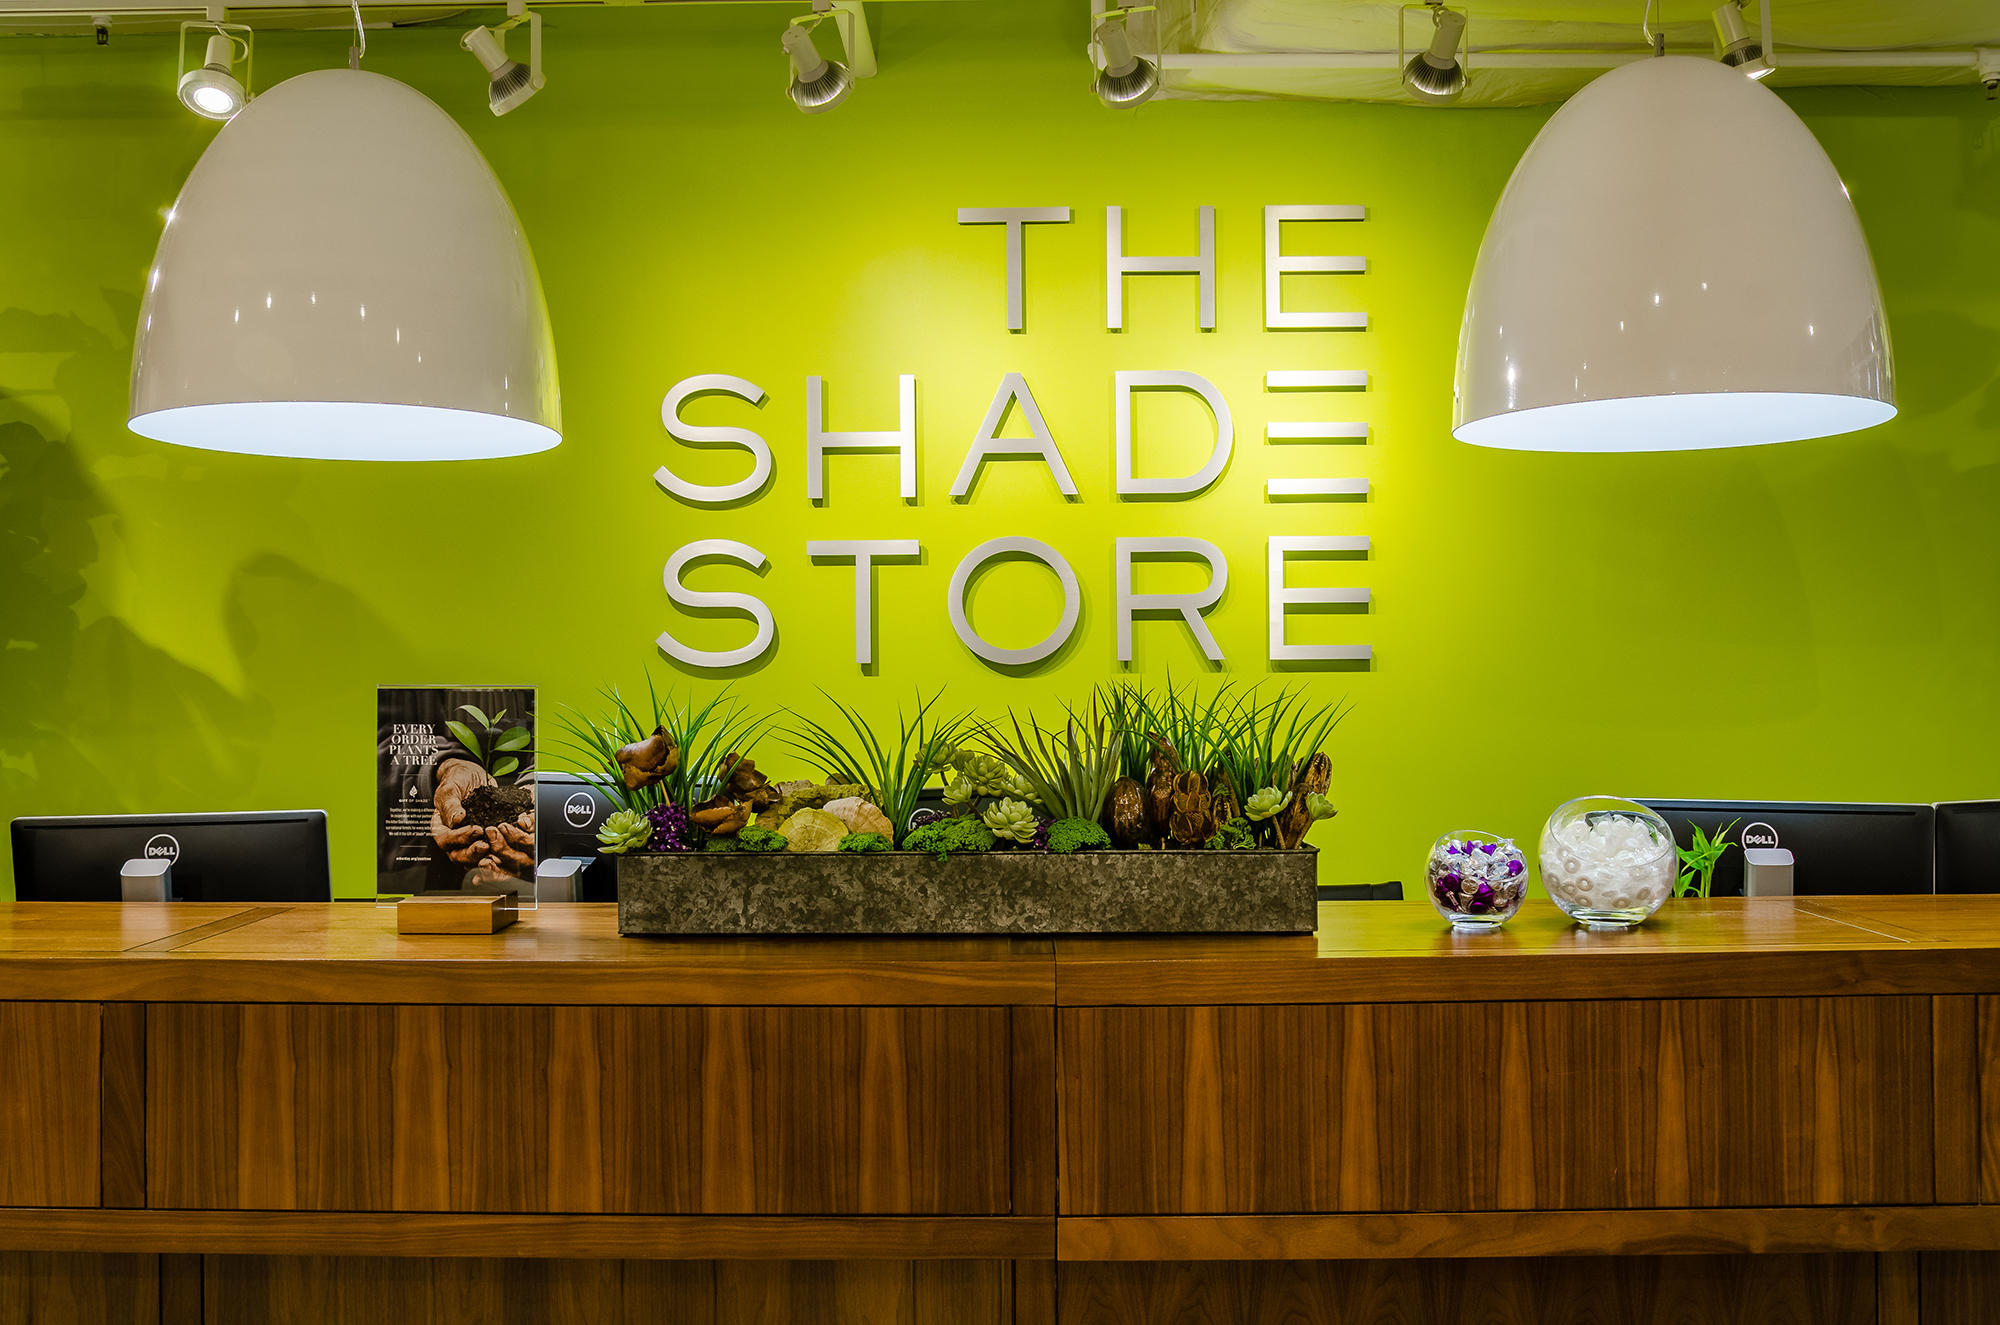 The Shade Store image 3